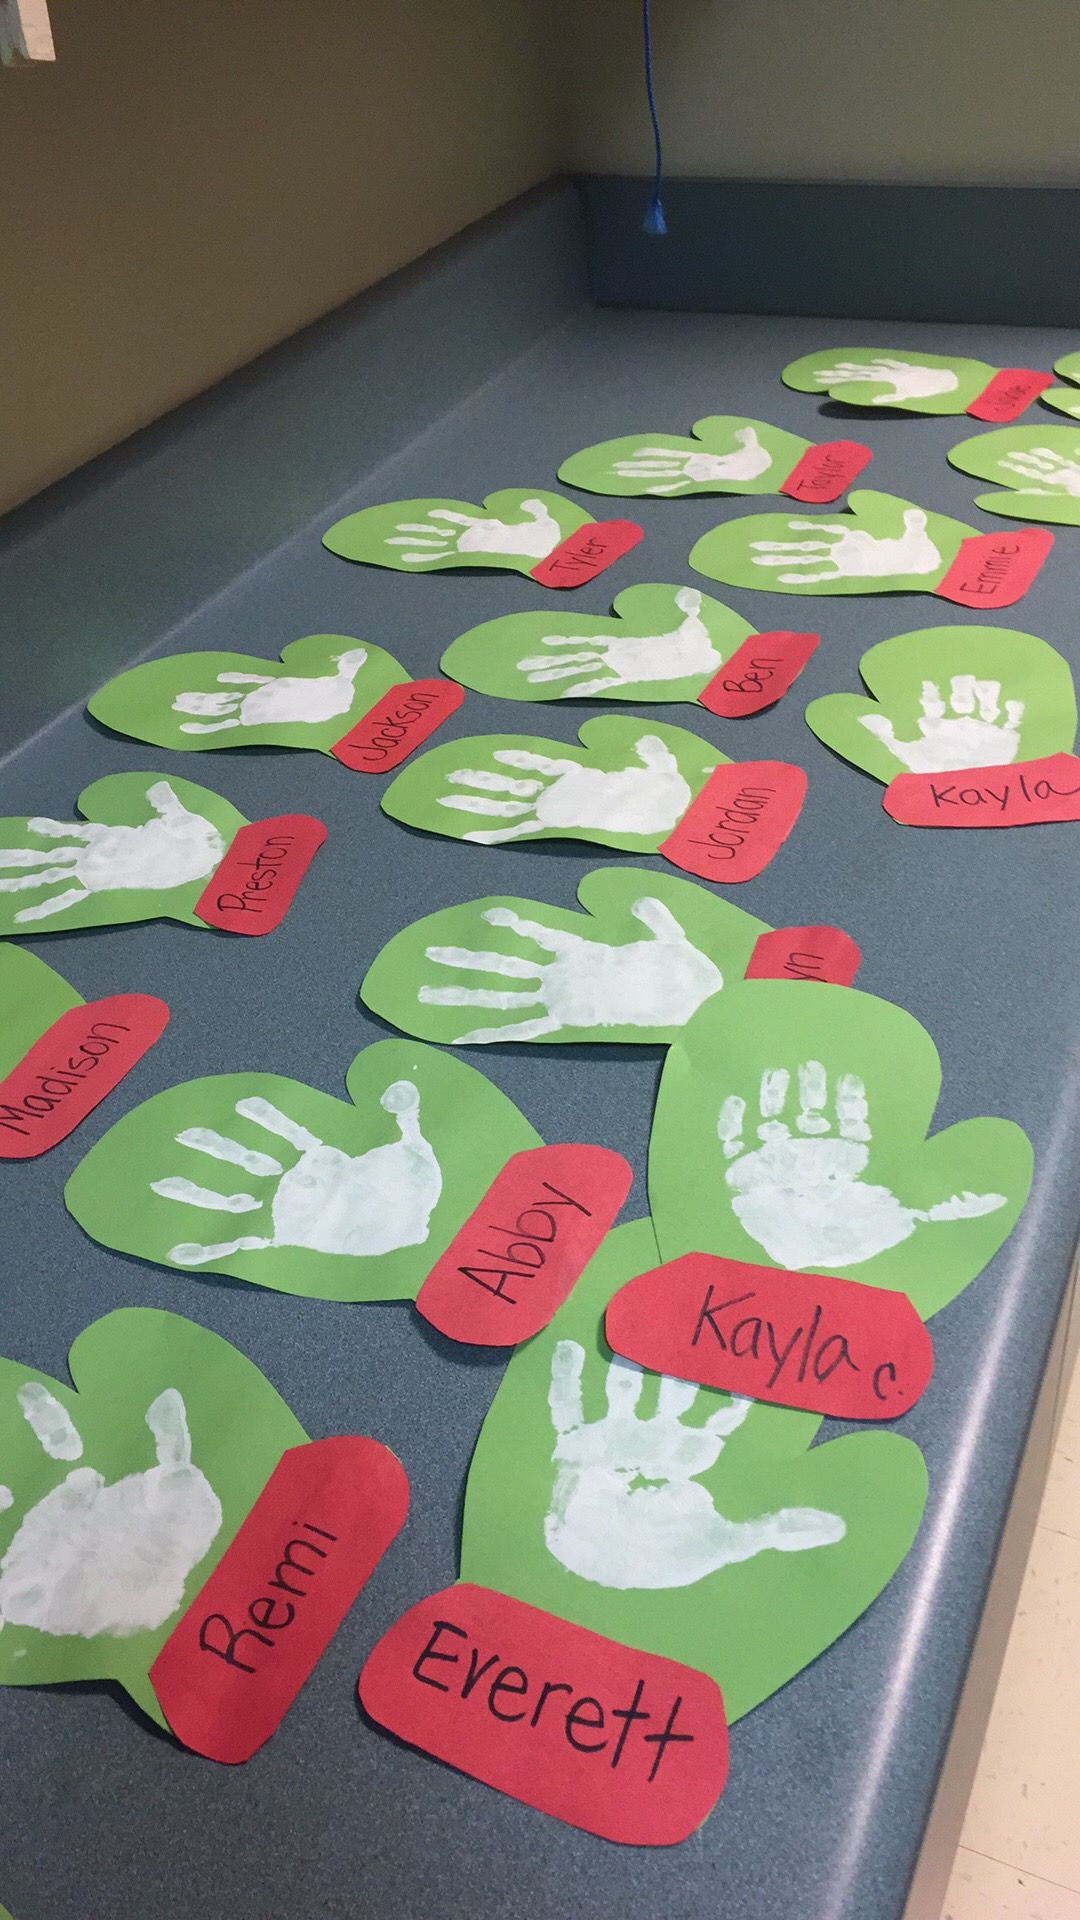 Preschool Arts And Crafts Ideas  23 Cute and Fun Handprint and Footprint Crafts for Kids